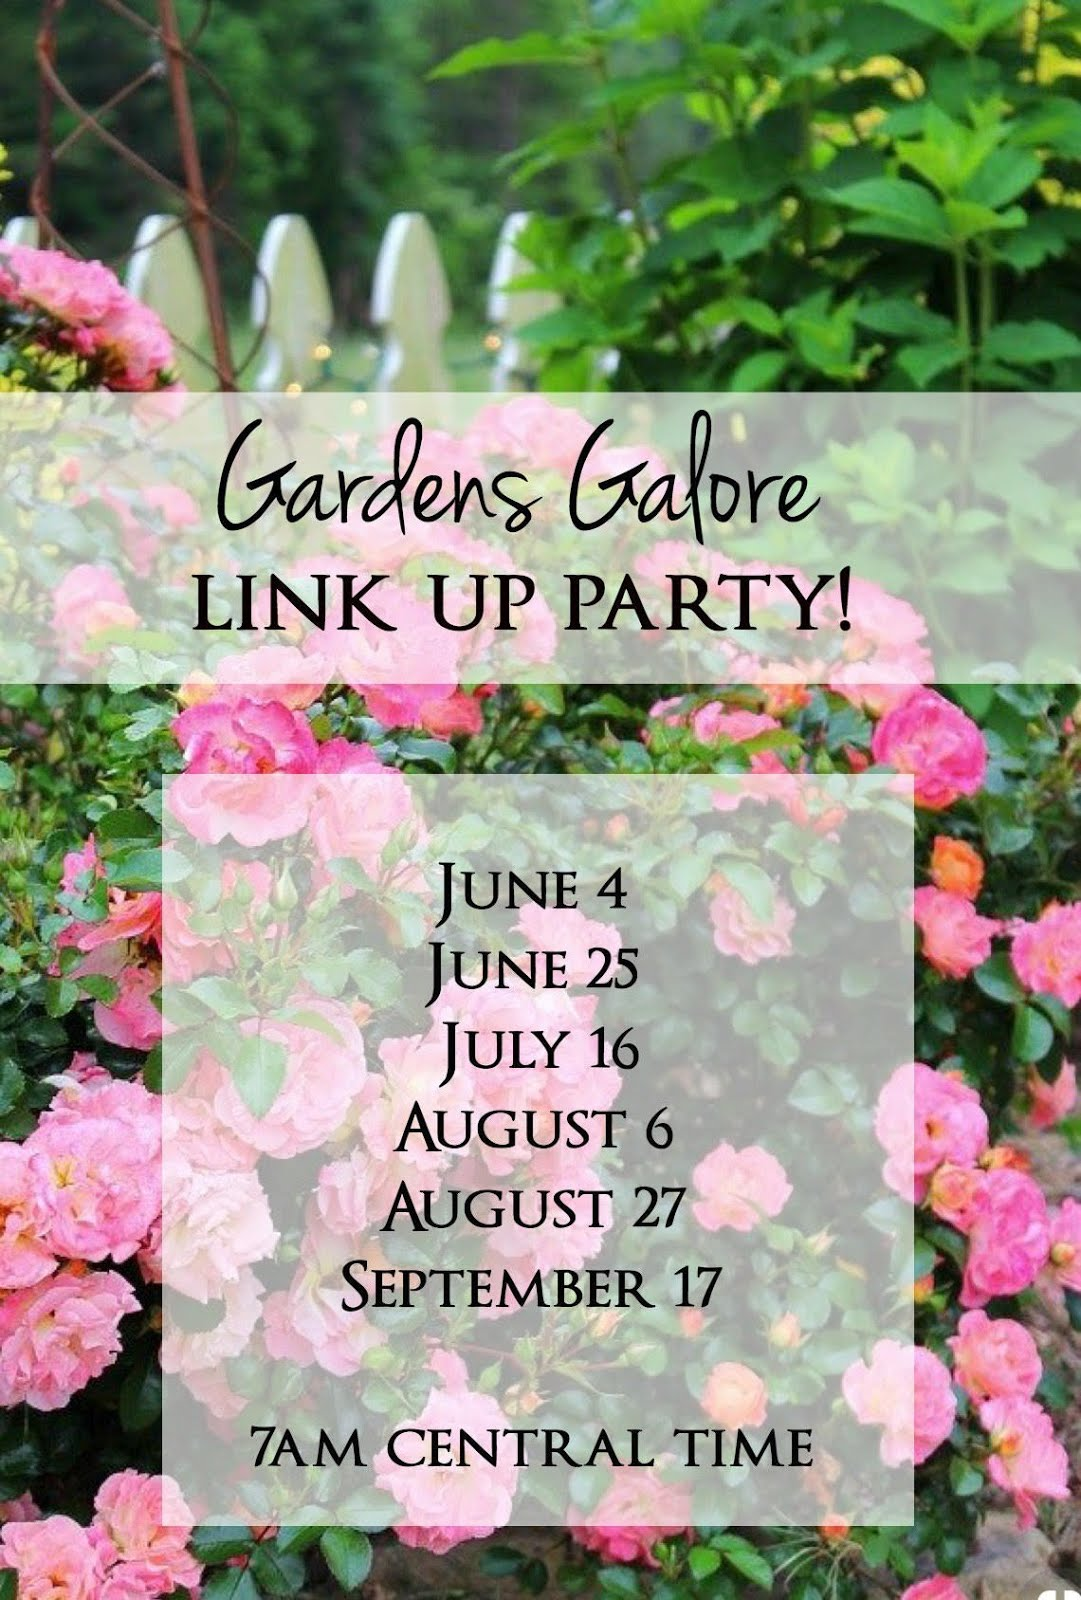 Gardens Galore Link Up Party